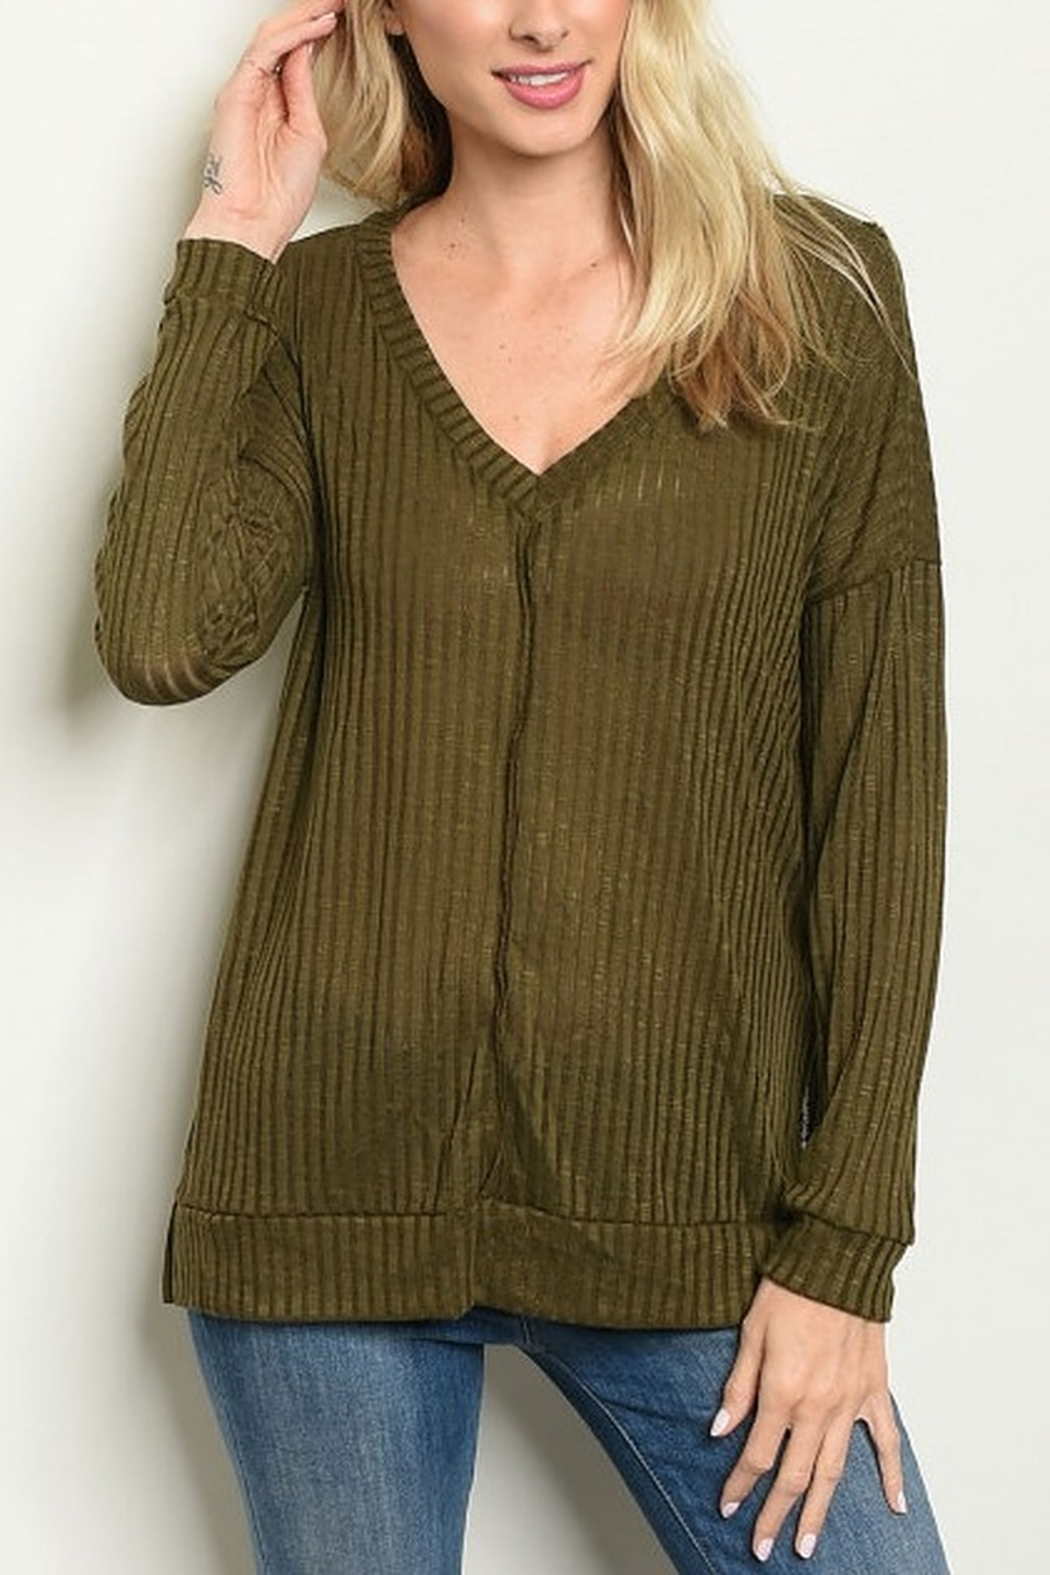 Lyn -Maree's Cozy Light Weight Long Sleeve - Main Image